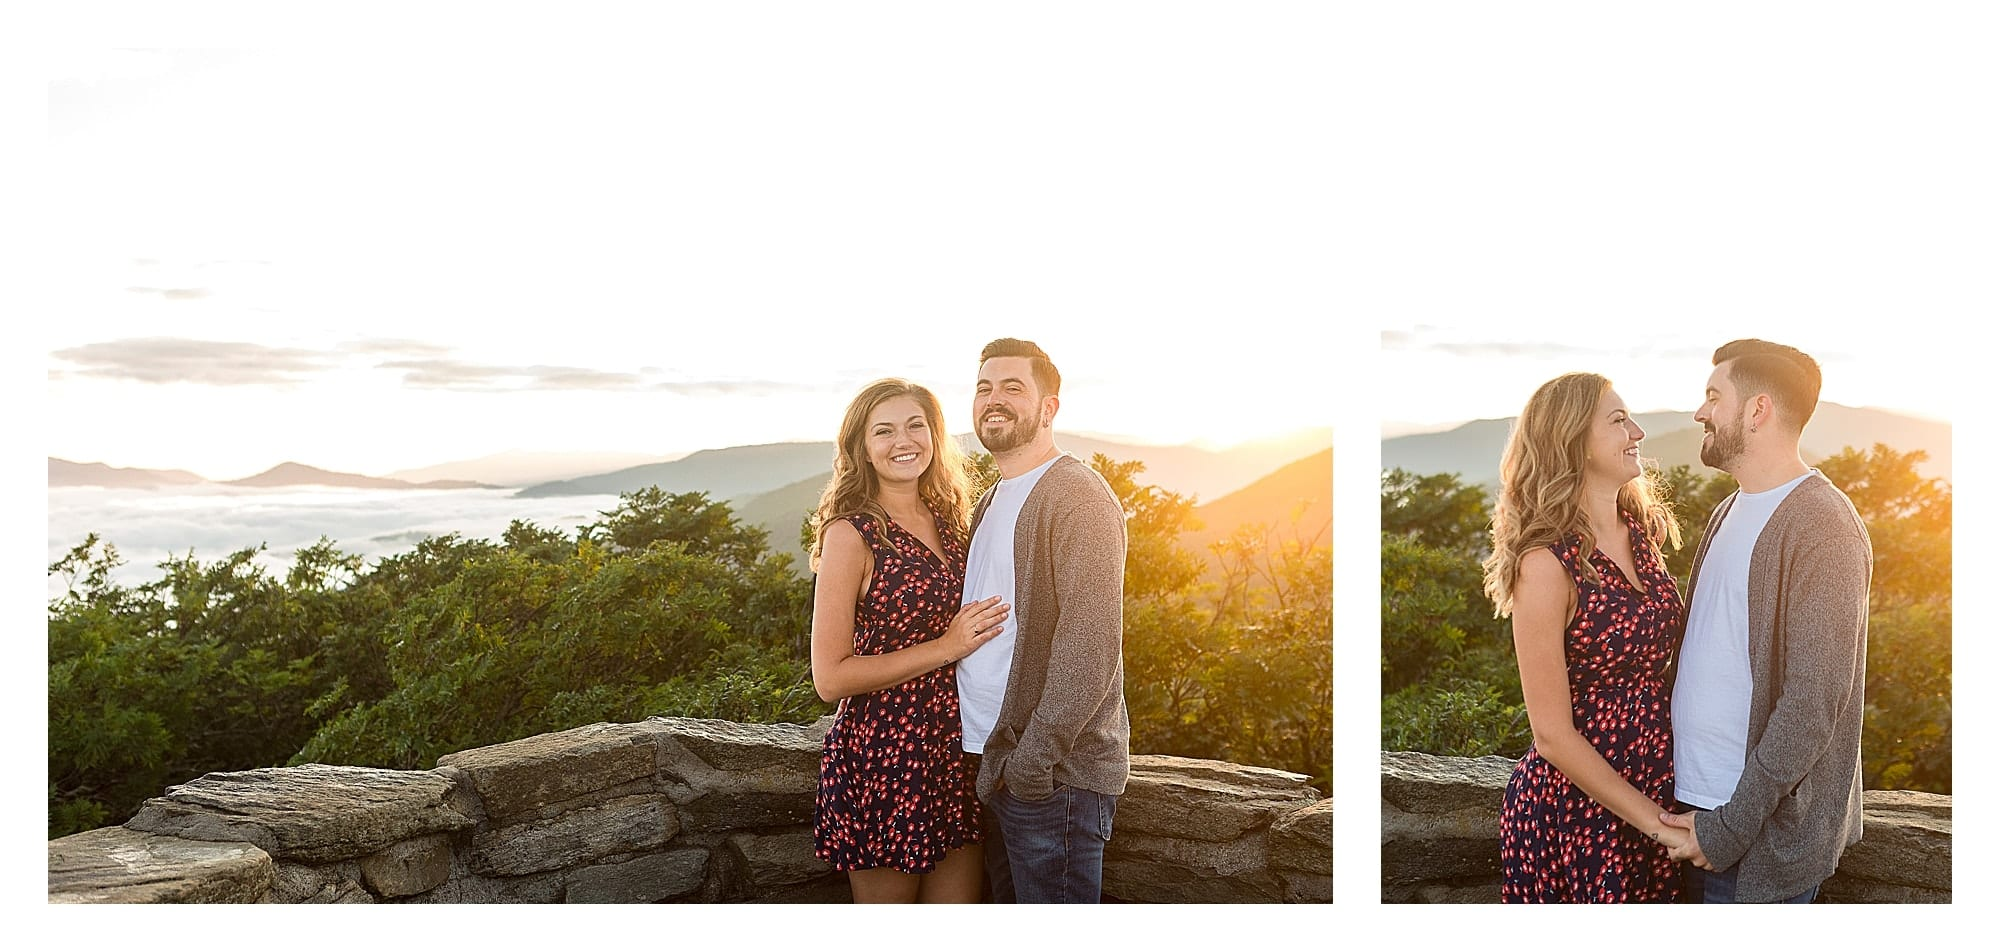 Engaged couple smiling at camera with sunrise and mountains in background